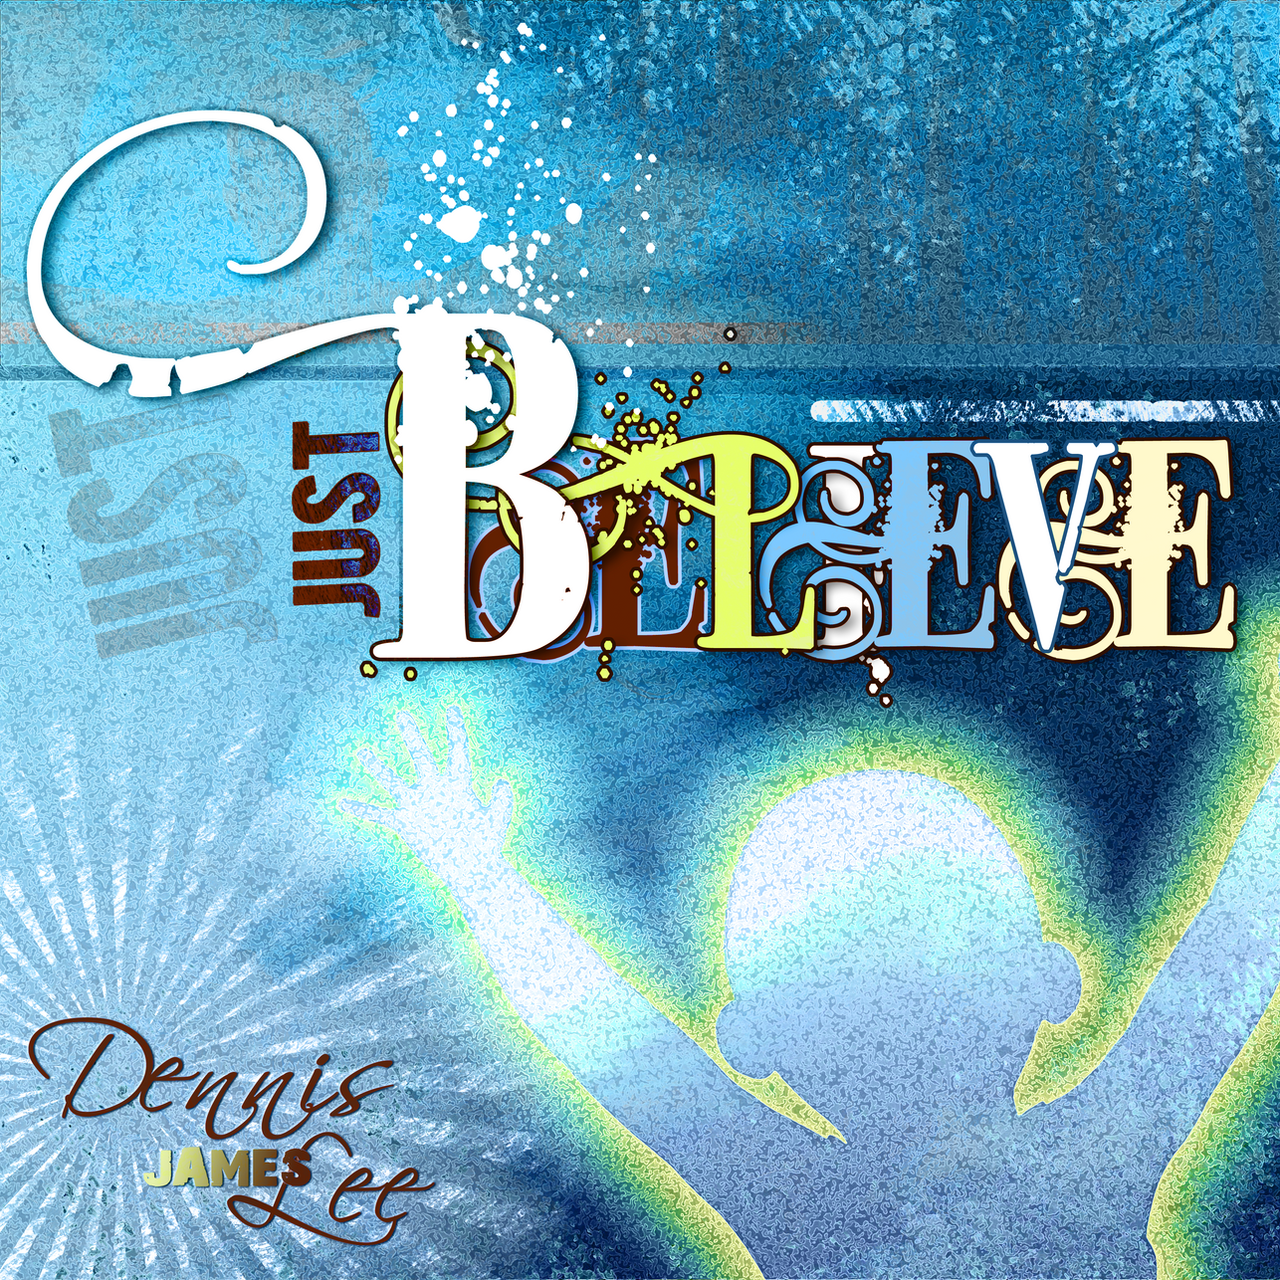 Just Believe CD Cover 105 by madetobeunique